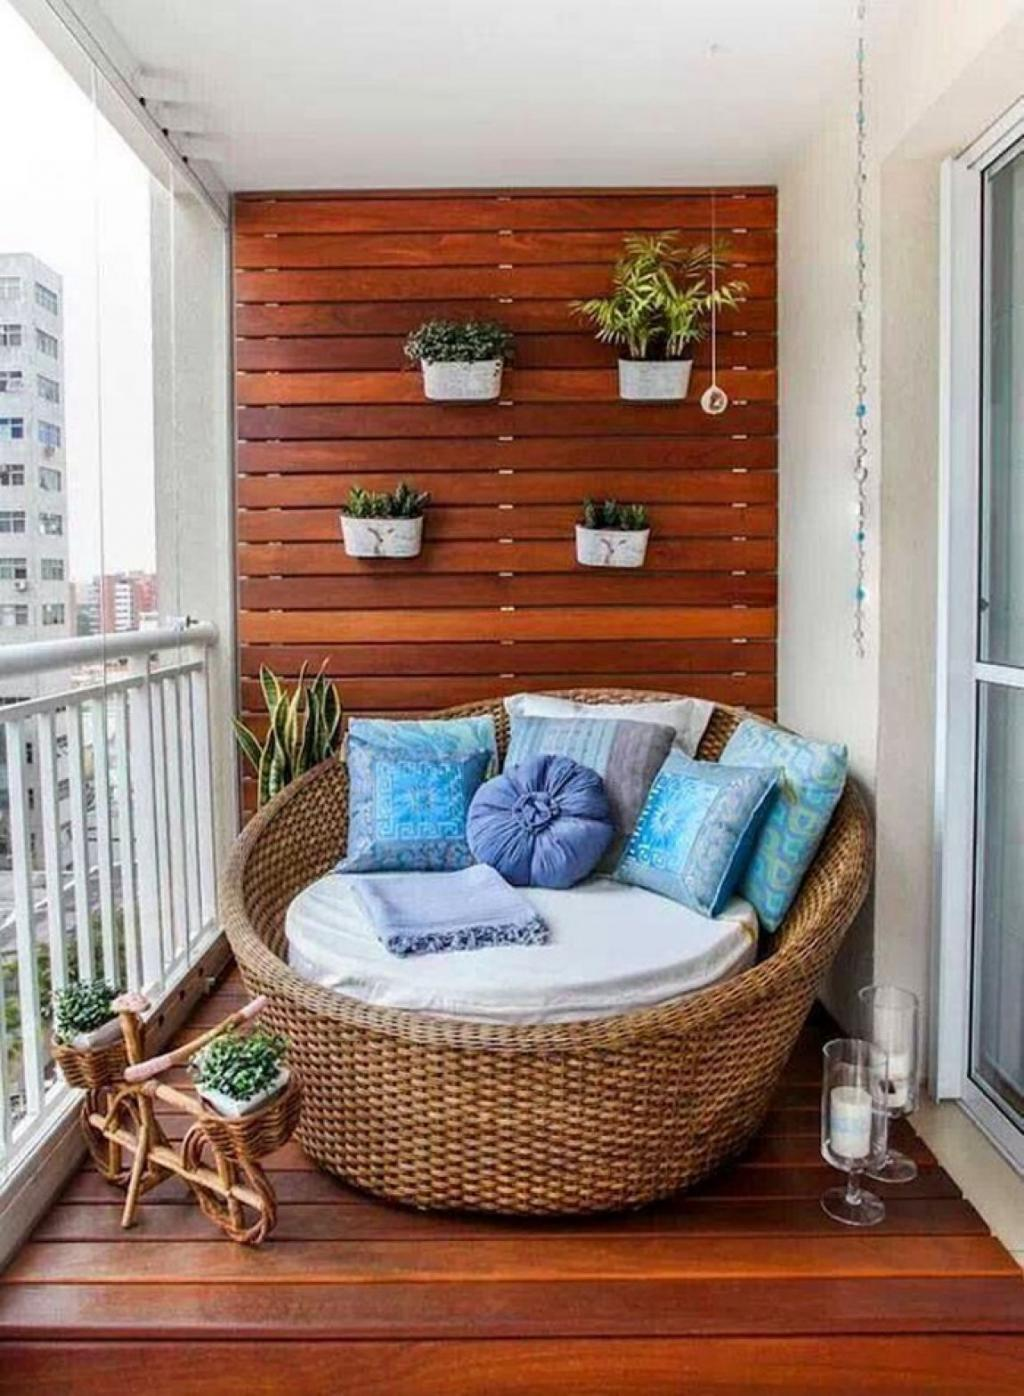 Comfy Papasan Reading Chair with Rattan Chairfor Comfortable Reading Place